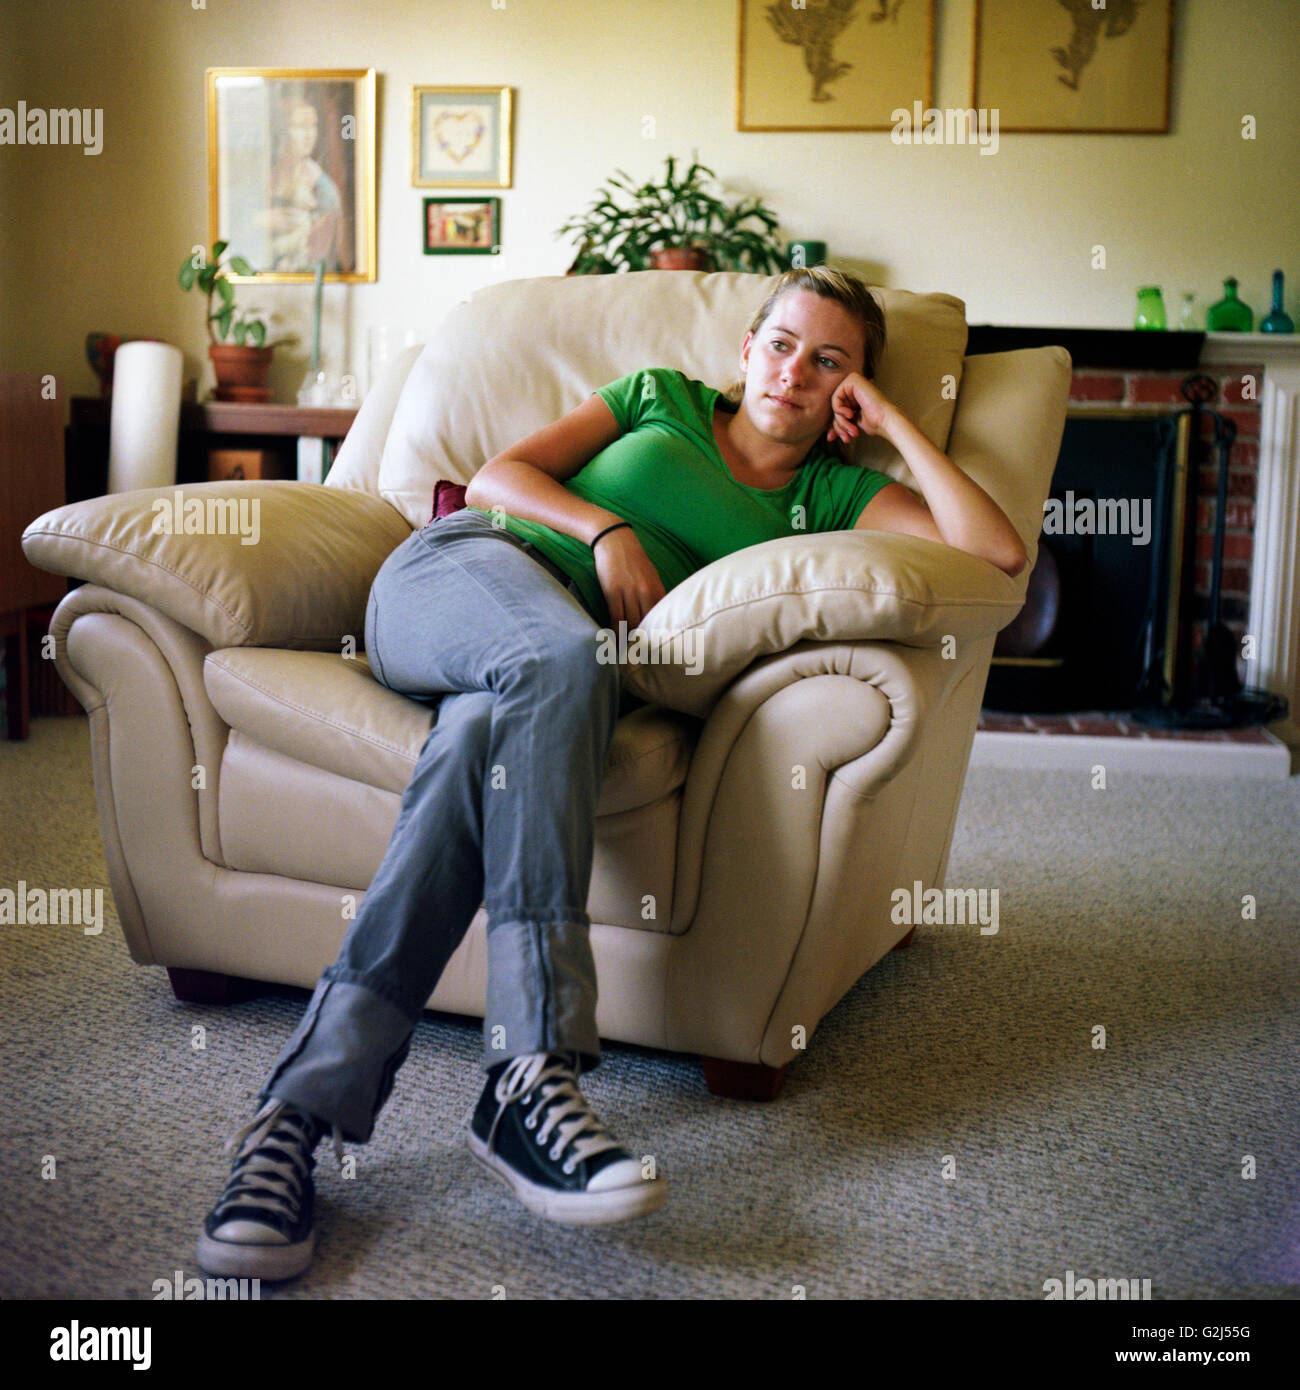 Teen Girl Chairs Bored Teen Girl Sitting In Easy Chair Stock Photo